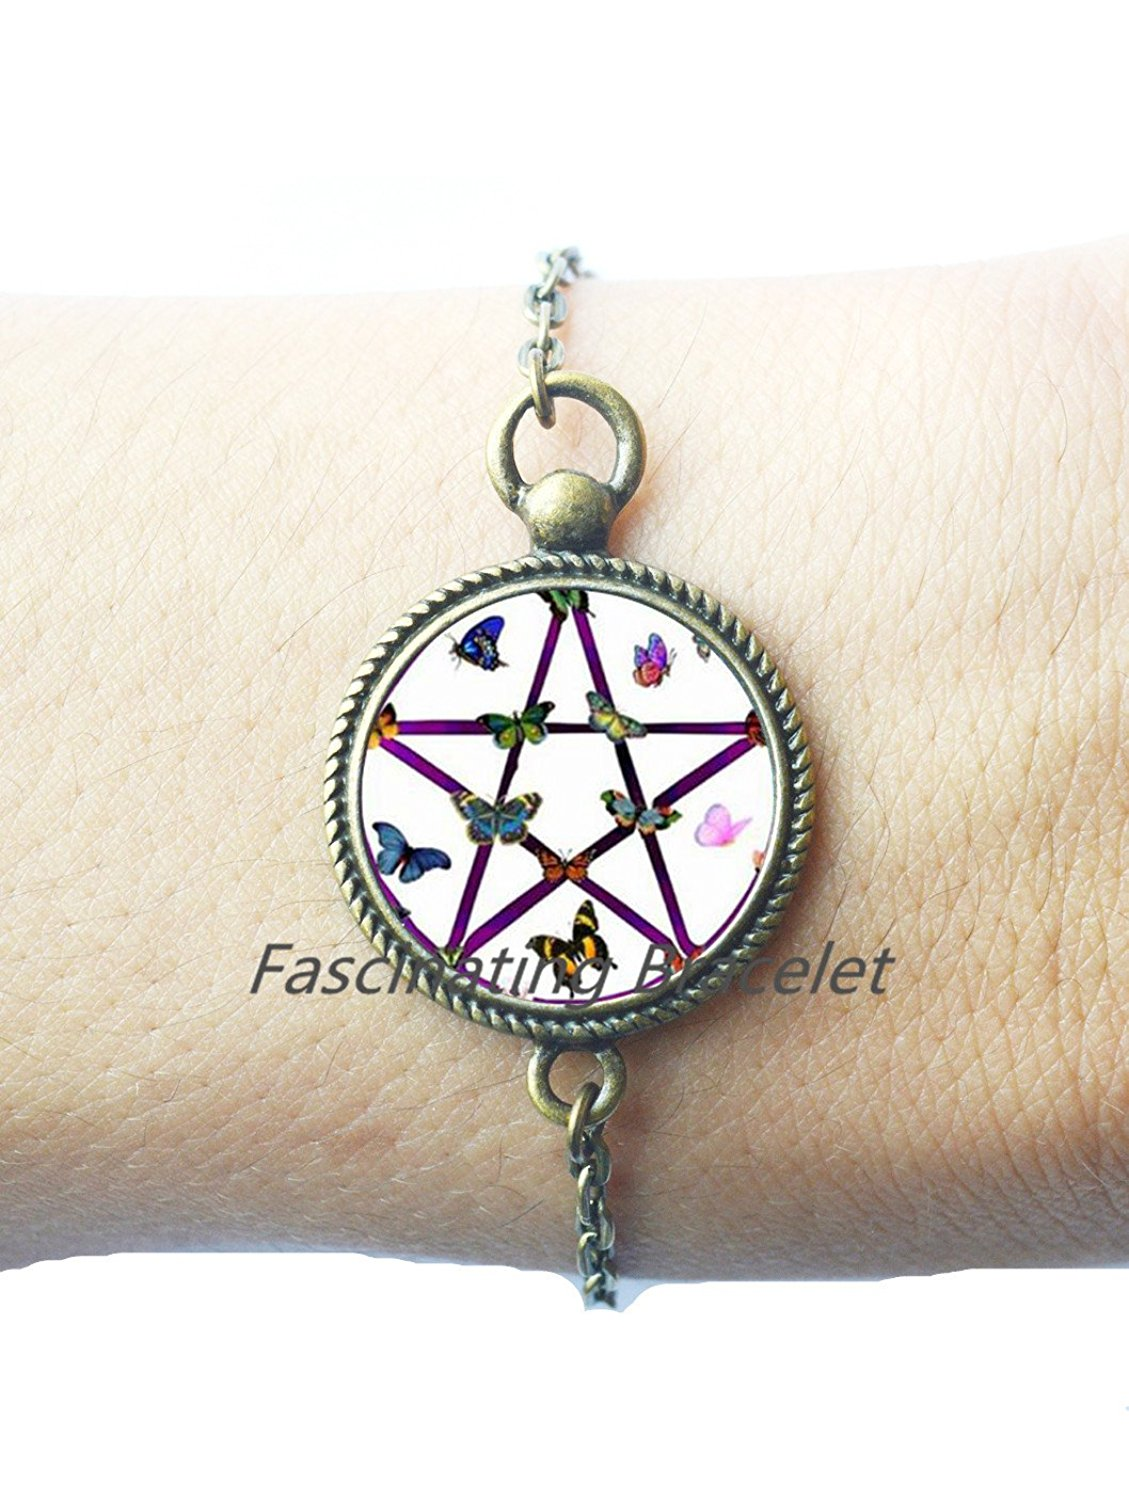 Cheap Free Wiccan, find Free Wiccan deals on line at Alibaba com